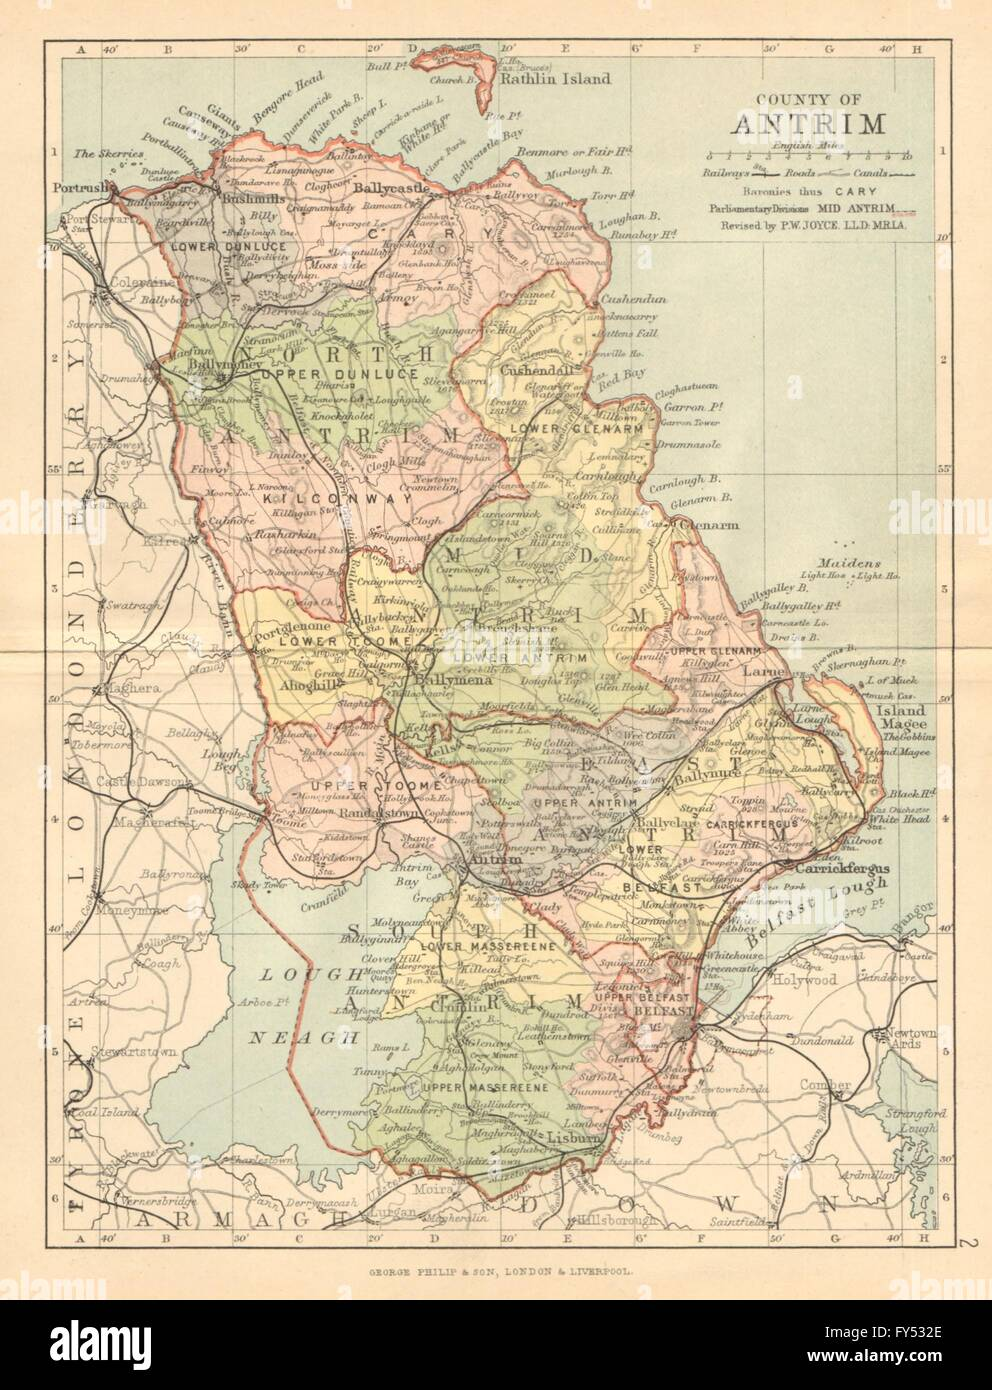 Bartholomew 1886 Ulster Belfast Lisburn County Antrim Antique County Map